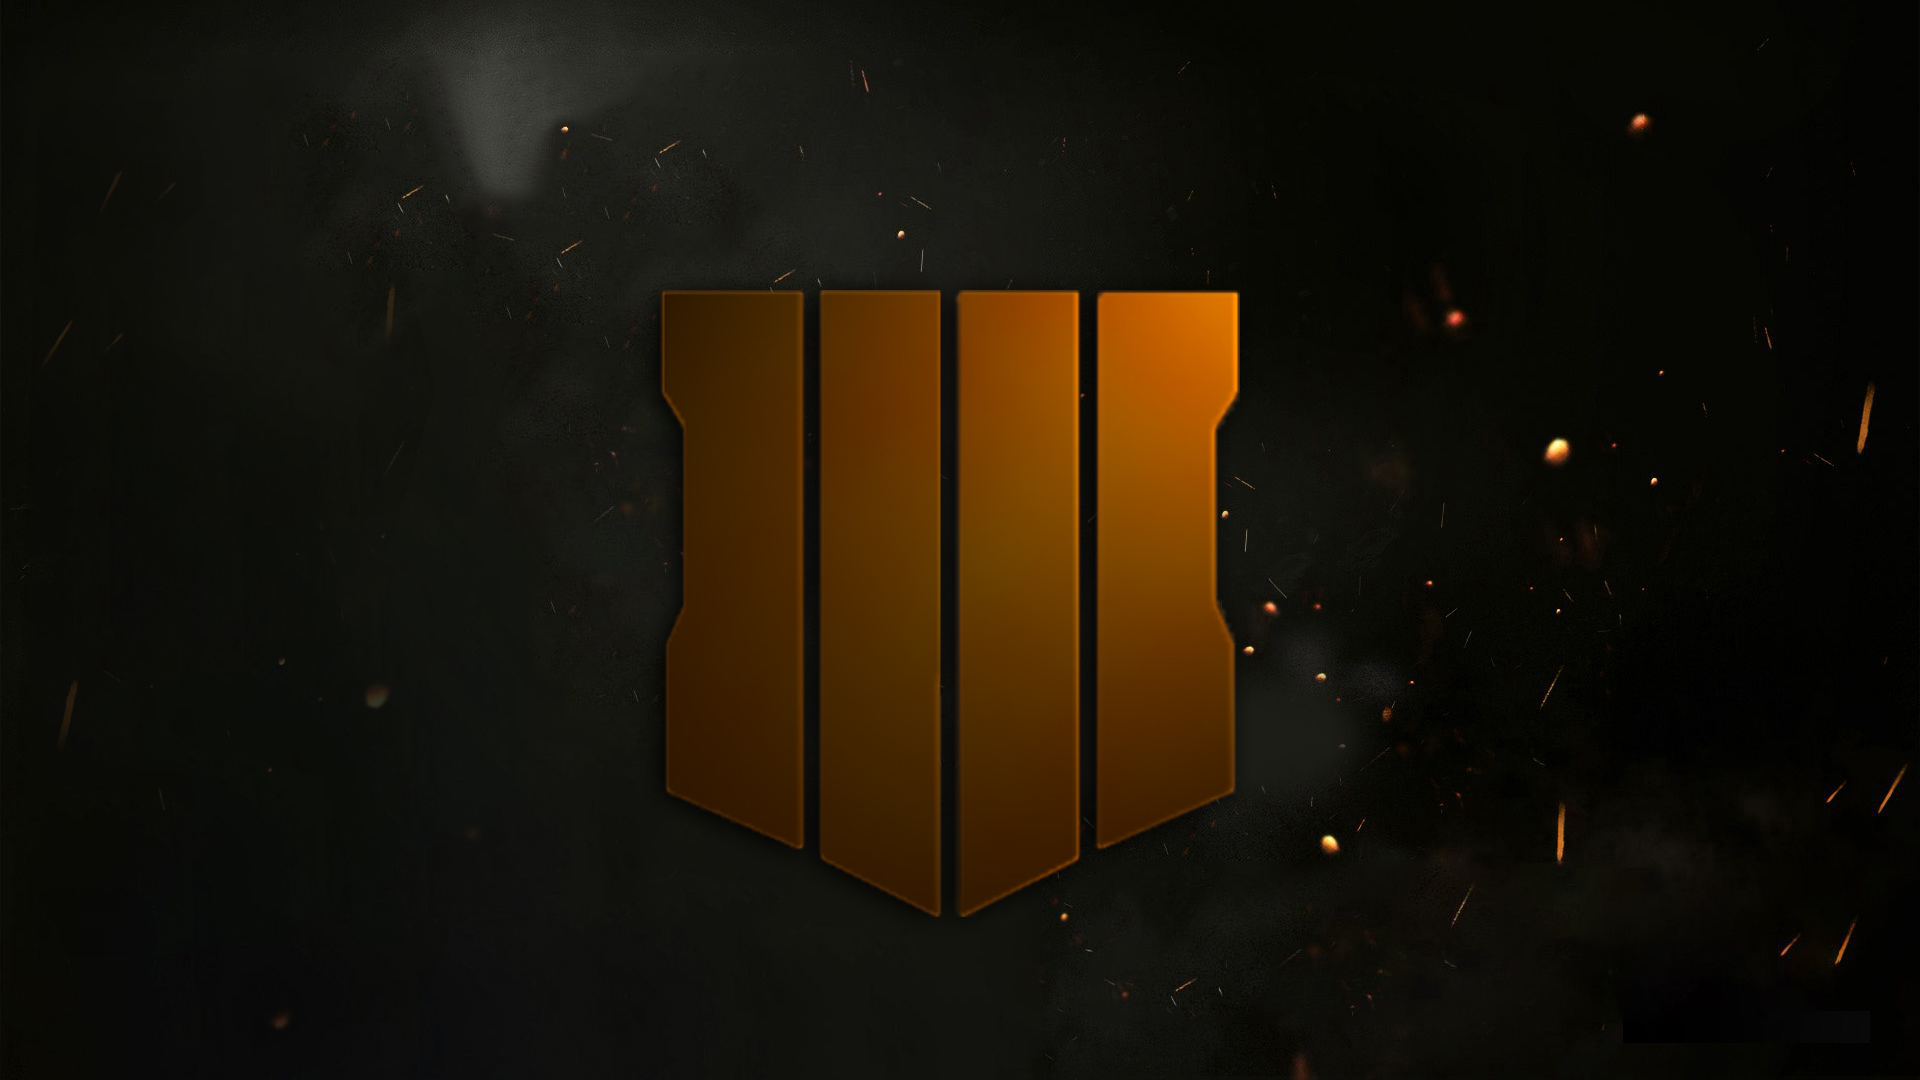 bo4 wallpaper. what do you think? : blackops4